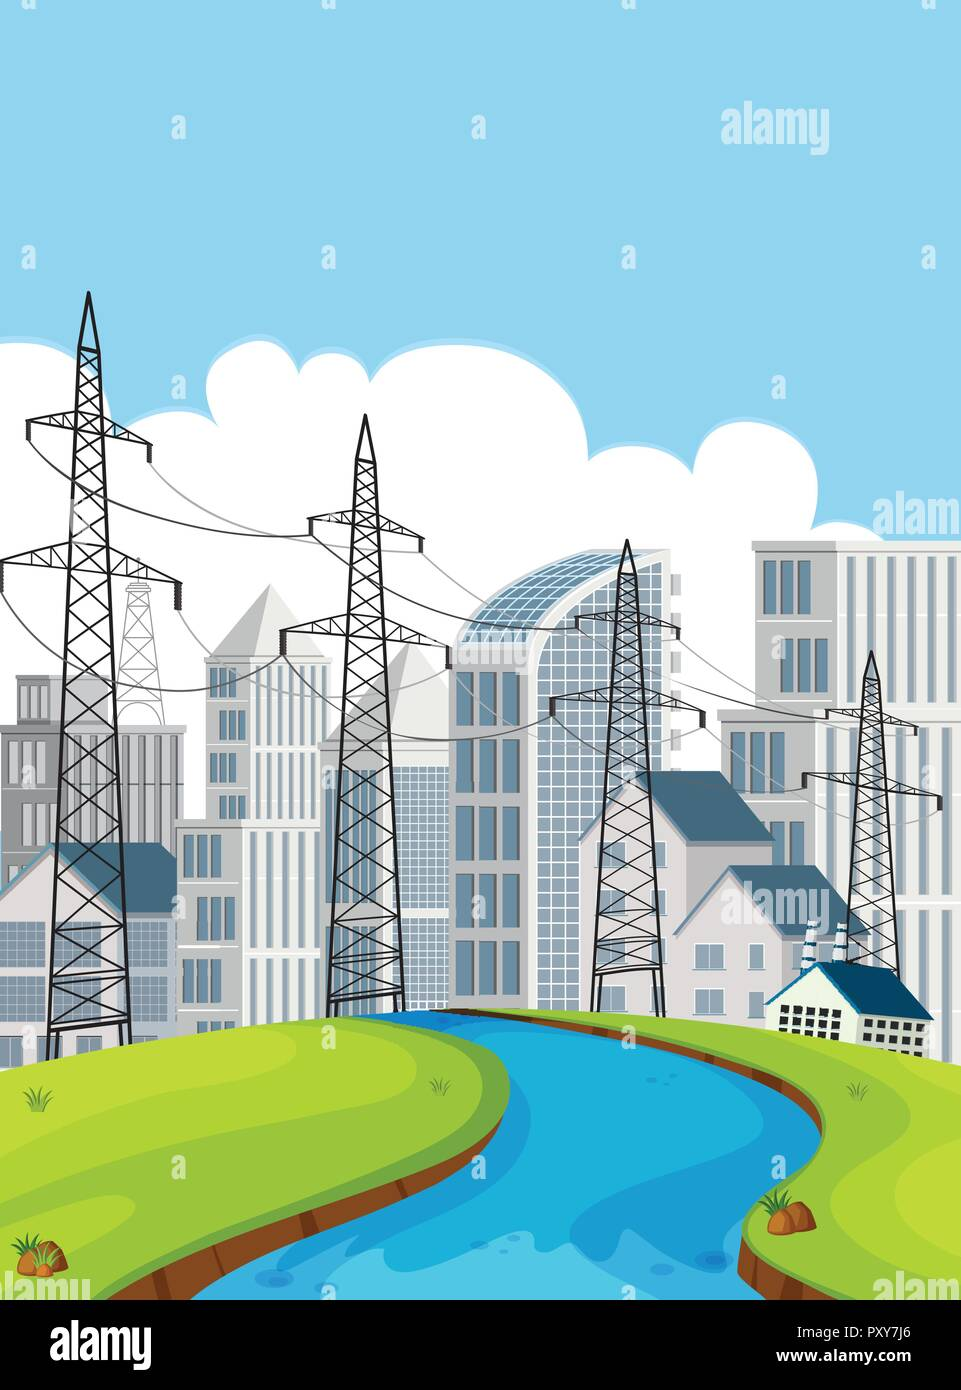 City scene with electricity poles and buildings illustration - Stock Vector